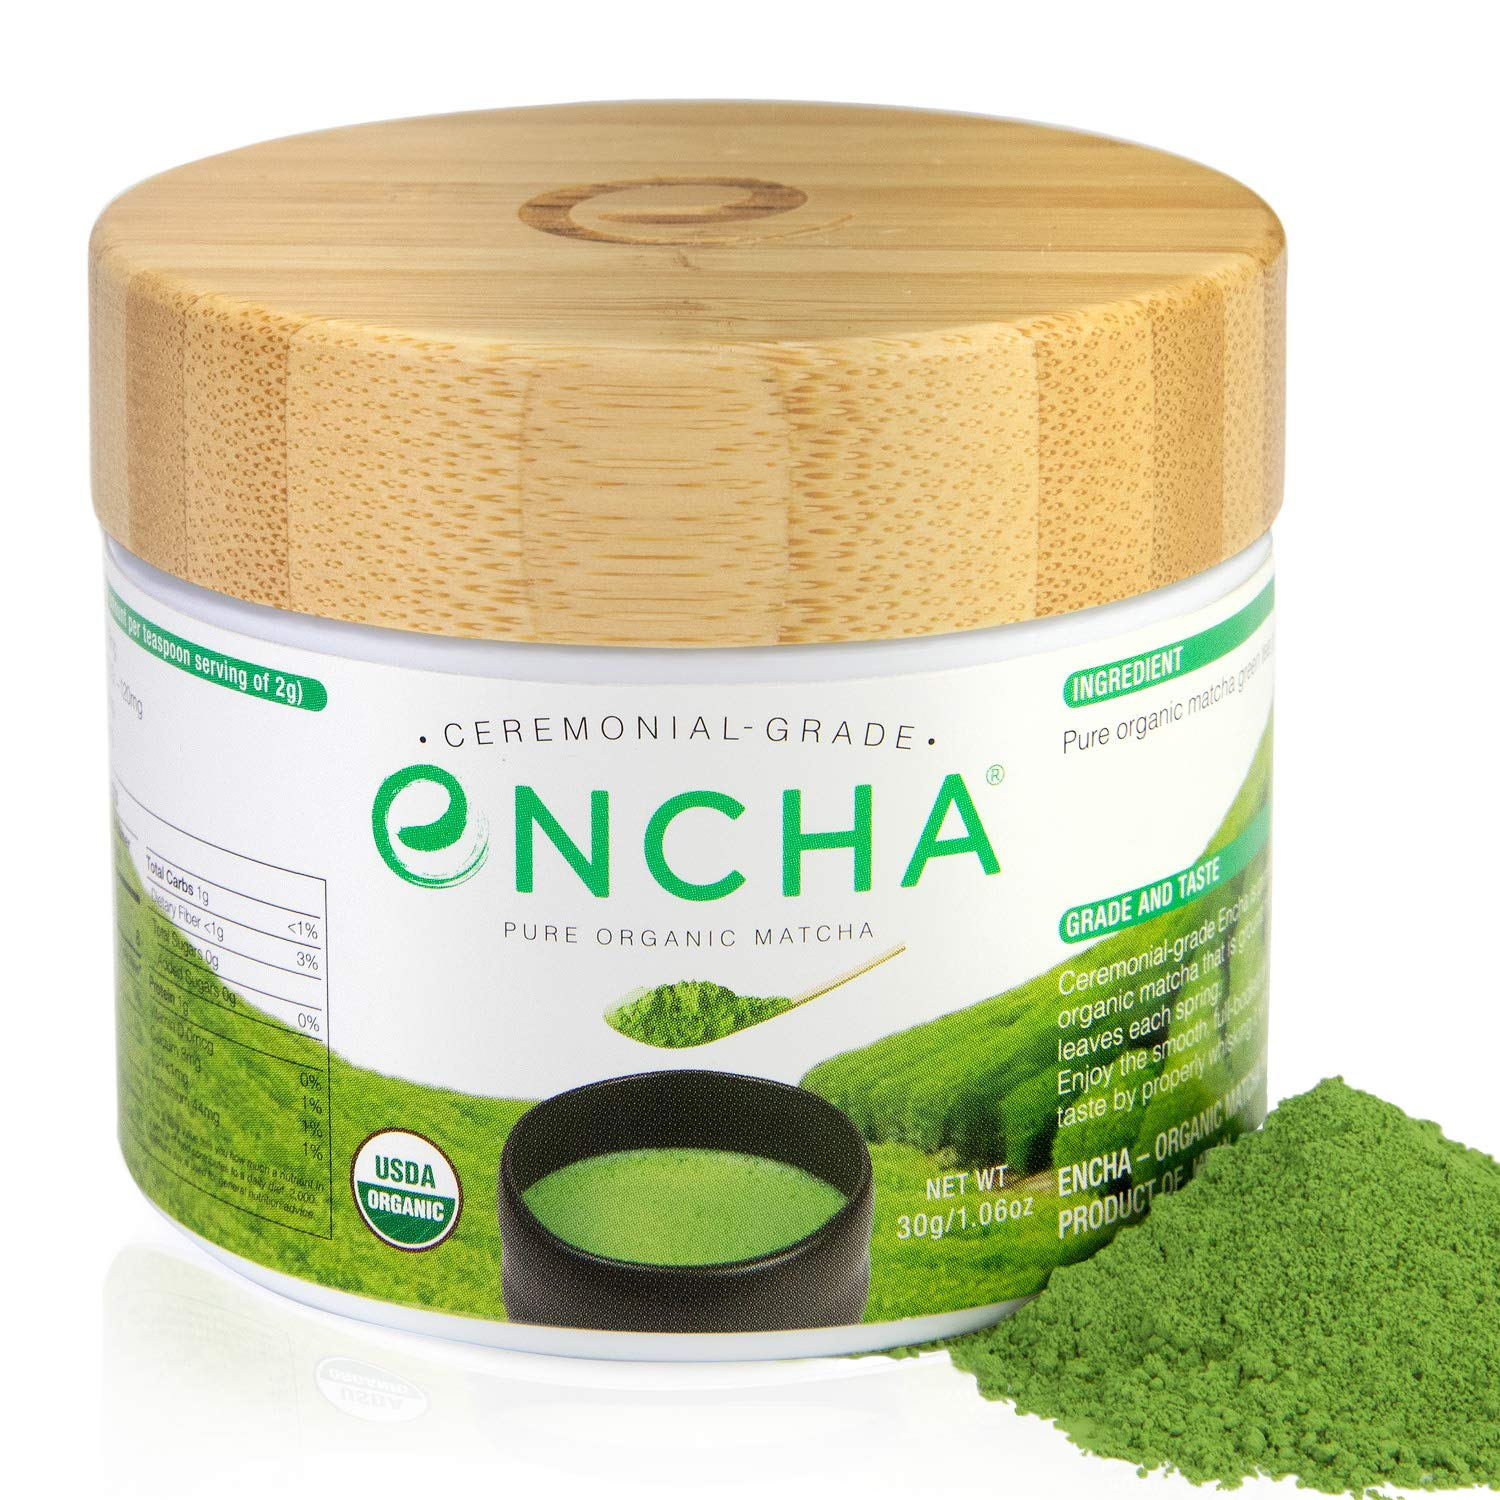 Encha Ceremonial Organic Matcha in Reusable Glass Jar (USDA Organic Certificate and Antioxidant Content Listed, Premium First Harvest Directly from Farm in Uji, Japan, 30g/1.06oz in Glass Jar) by Encha